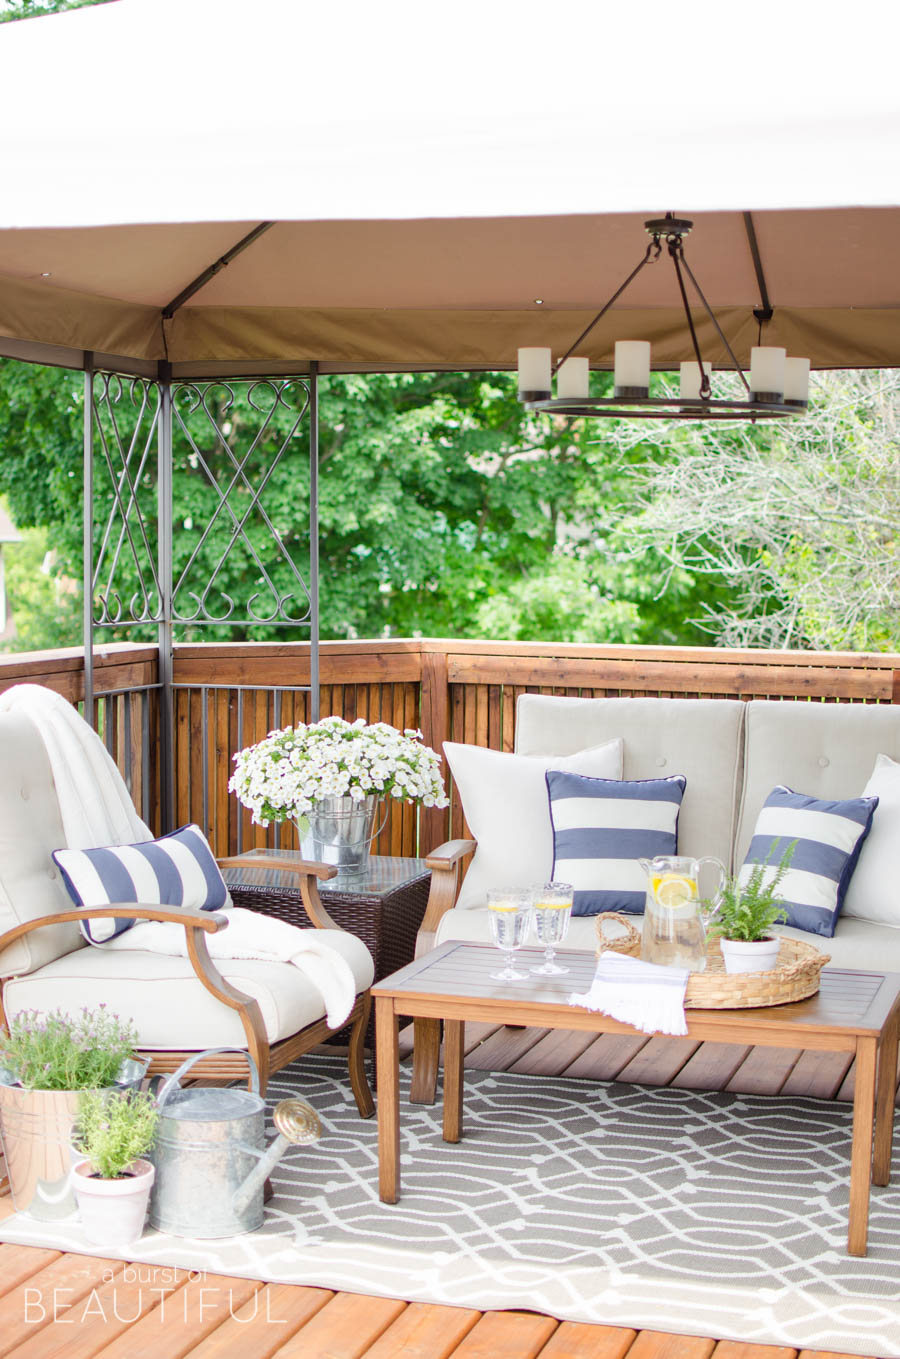 A Burst of Beautiful - 5 Outdoor Spaces with a French Vintage Vibe